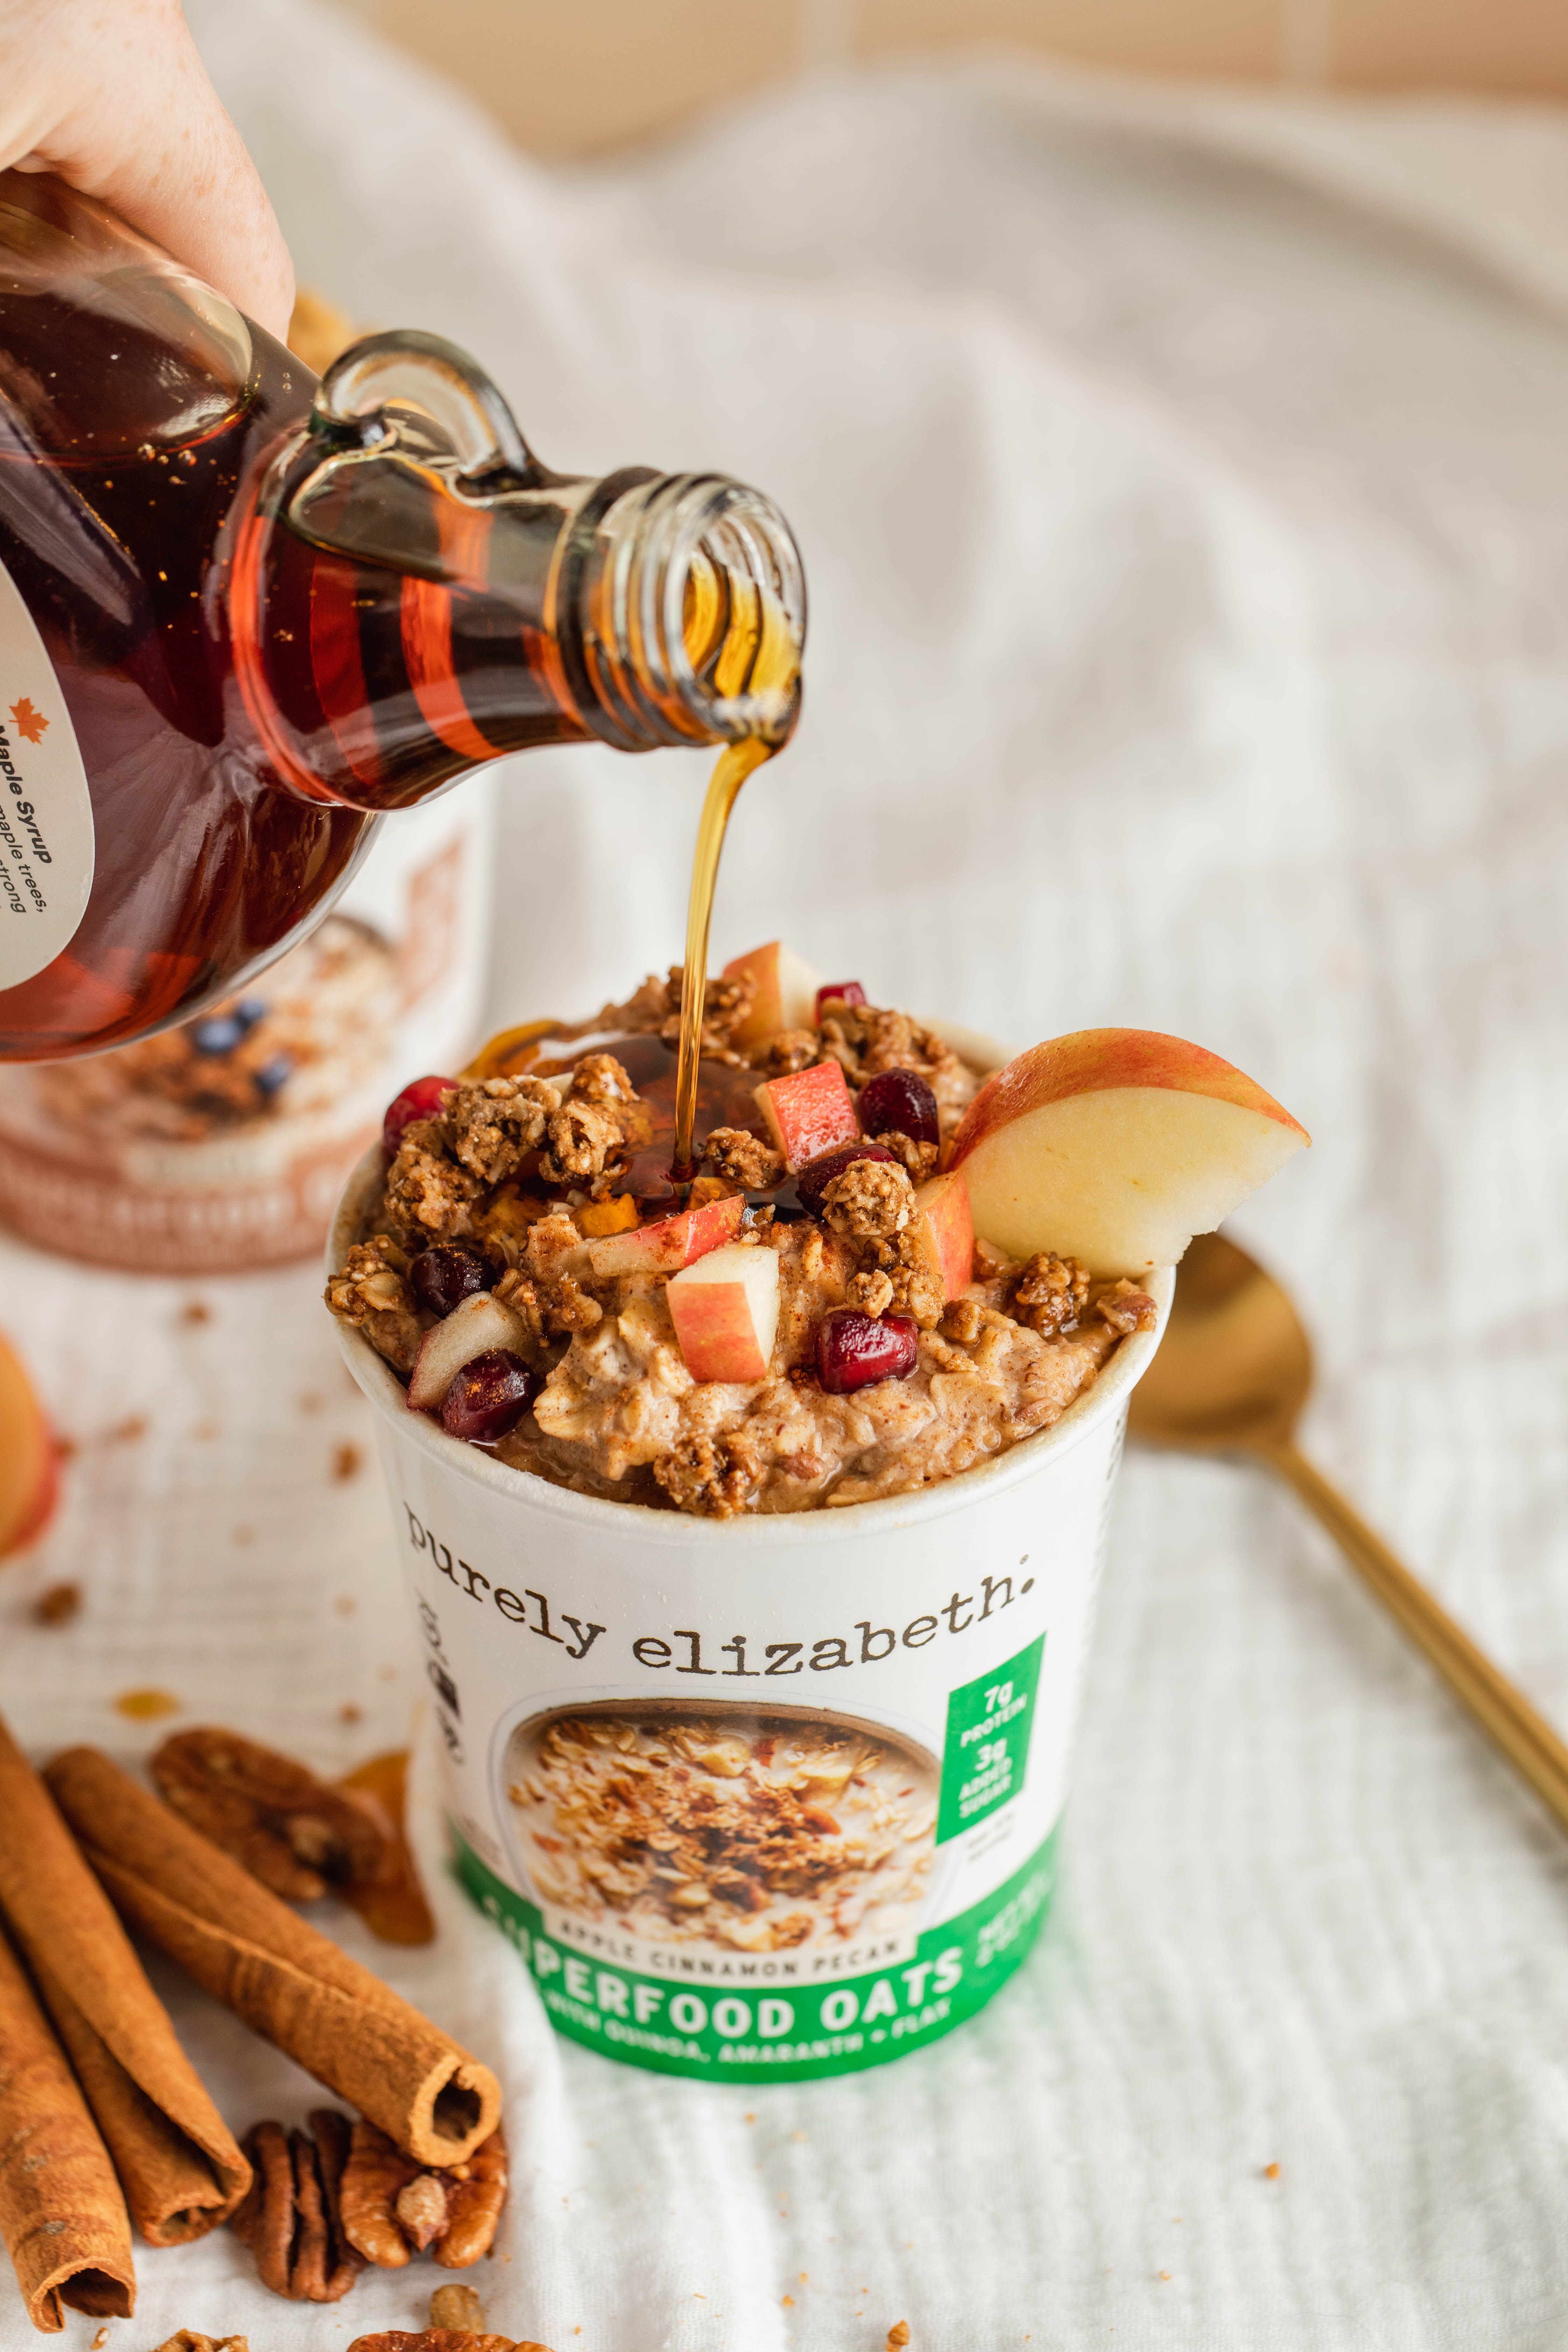 Maple syrup poured over Apple Cinnamon Superfood Oats